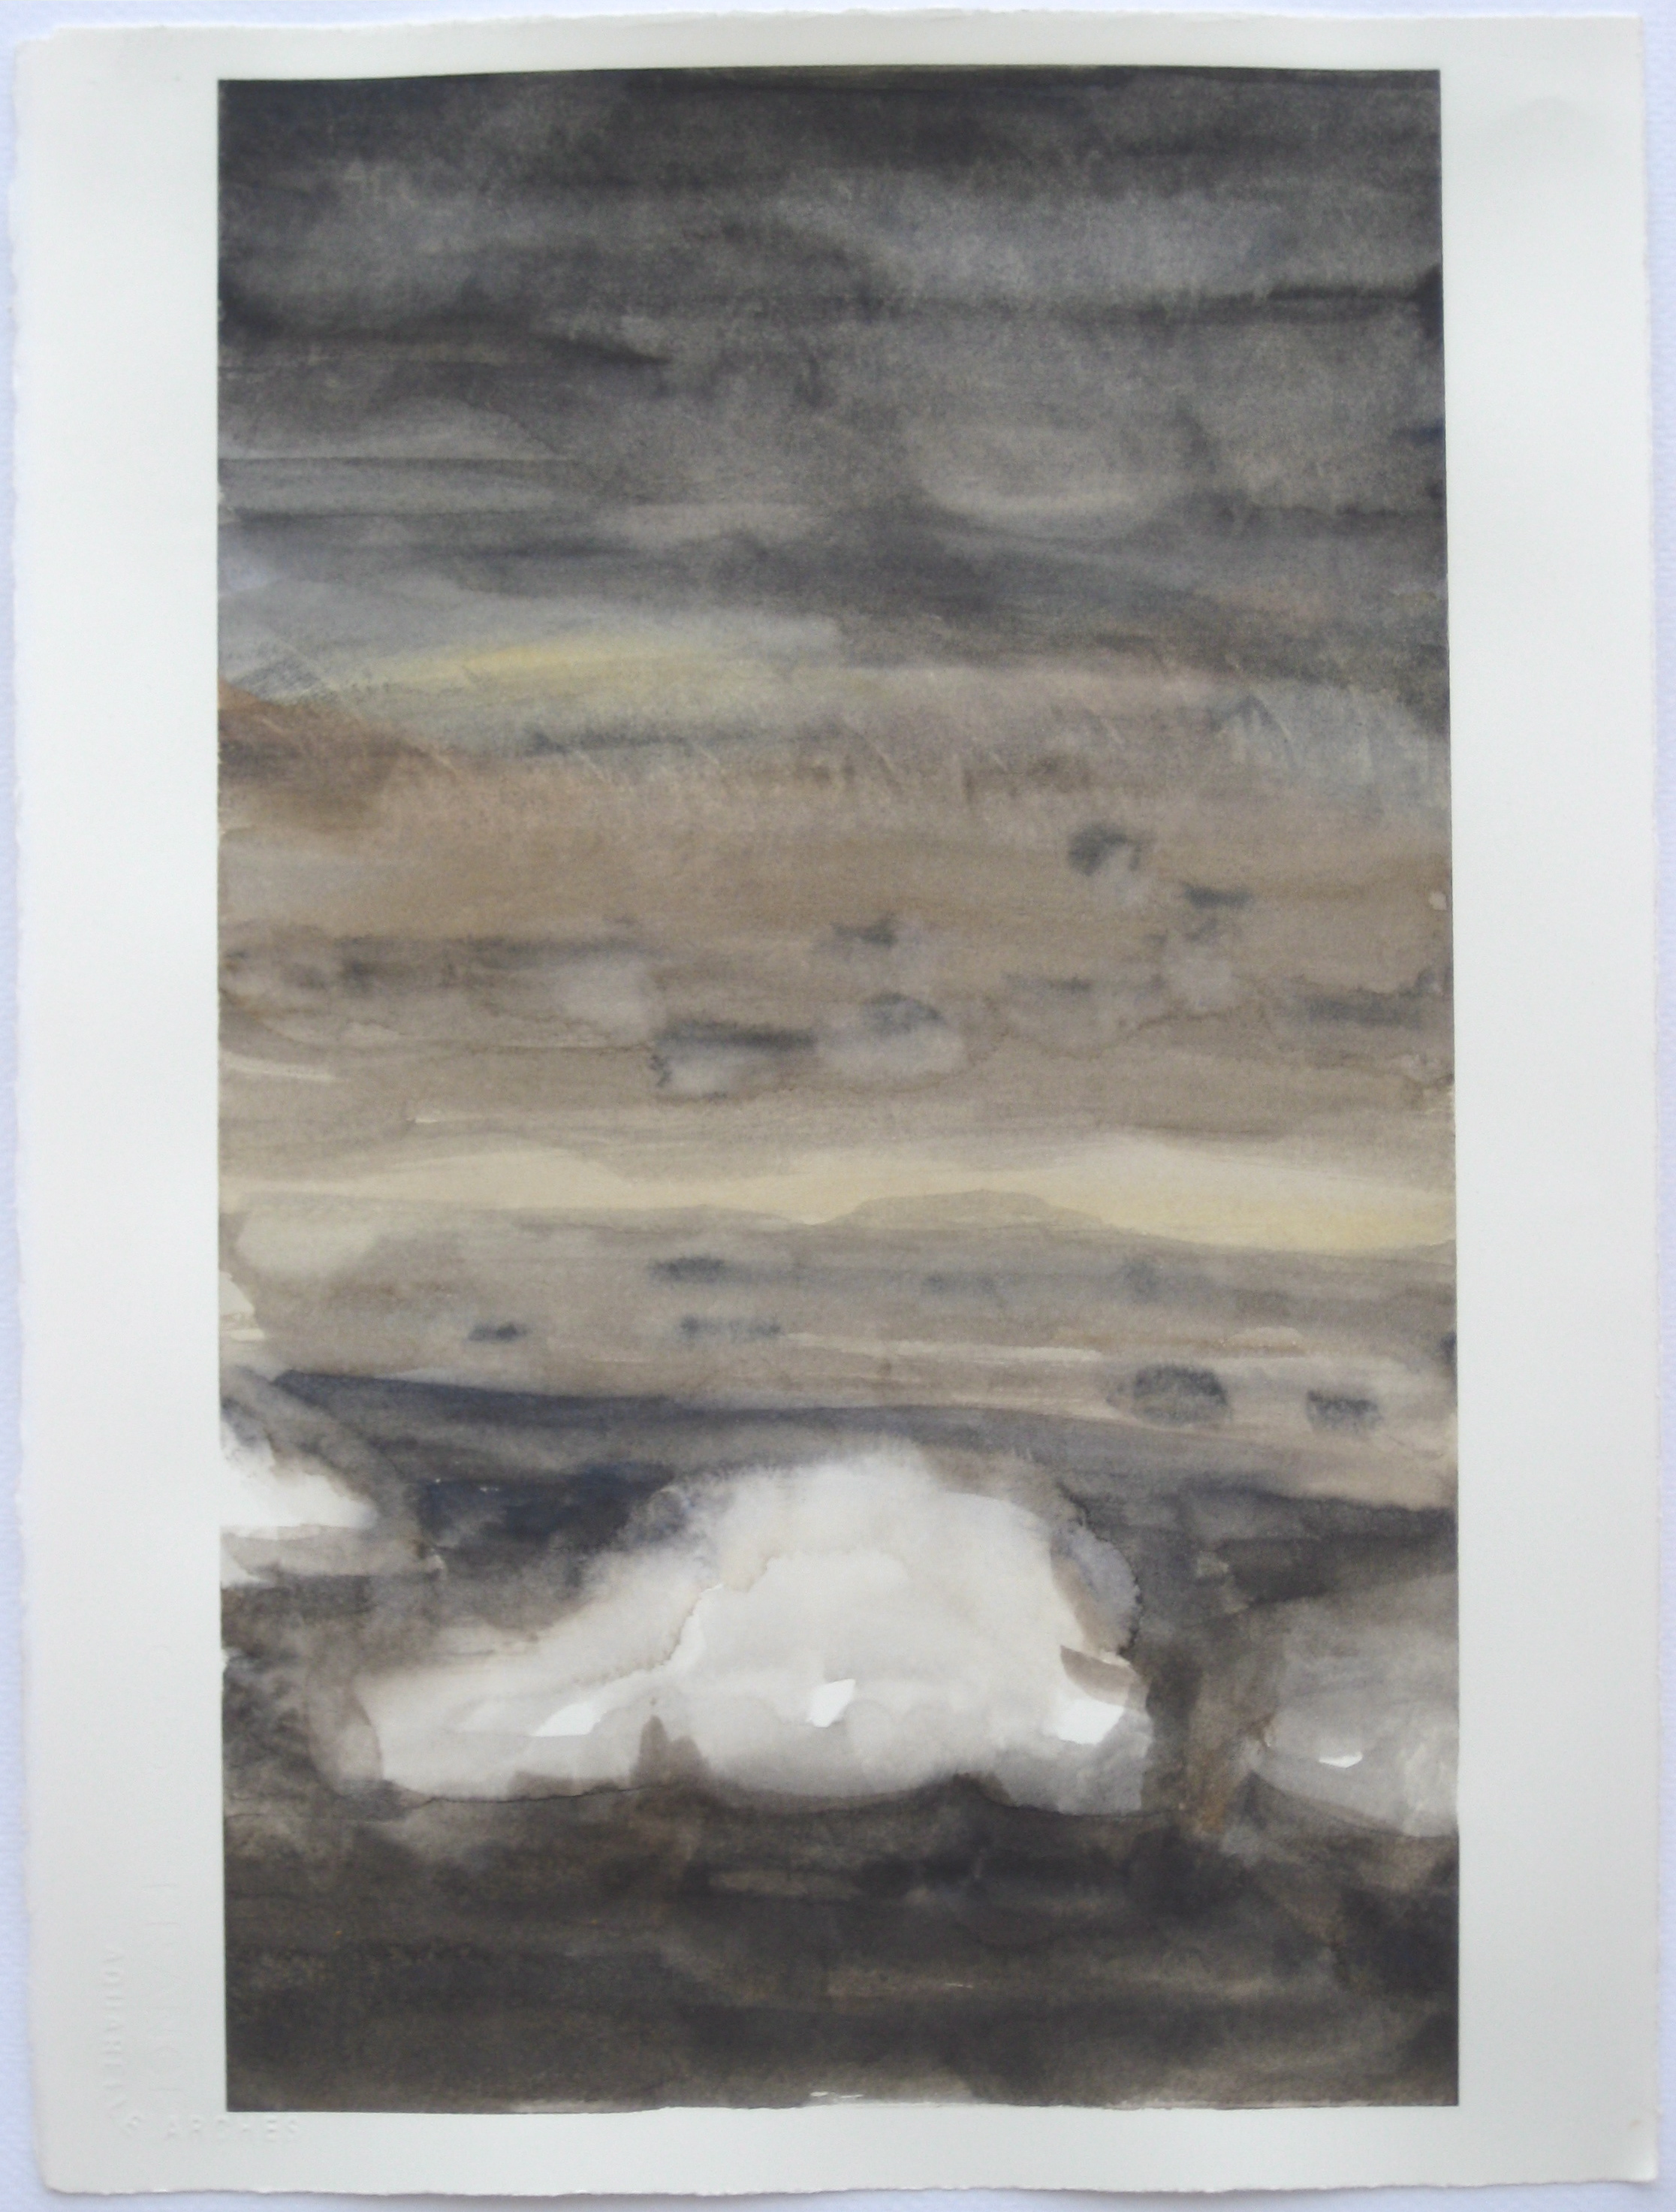 """Sky #5.4/2007, 2007, watercolor on paper paper: 15 1/4""""x11 1/4""""; image: 14""""x8 6/8"""""""